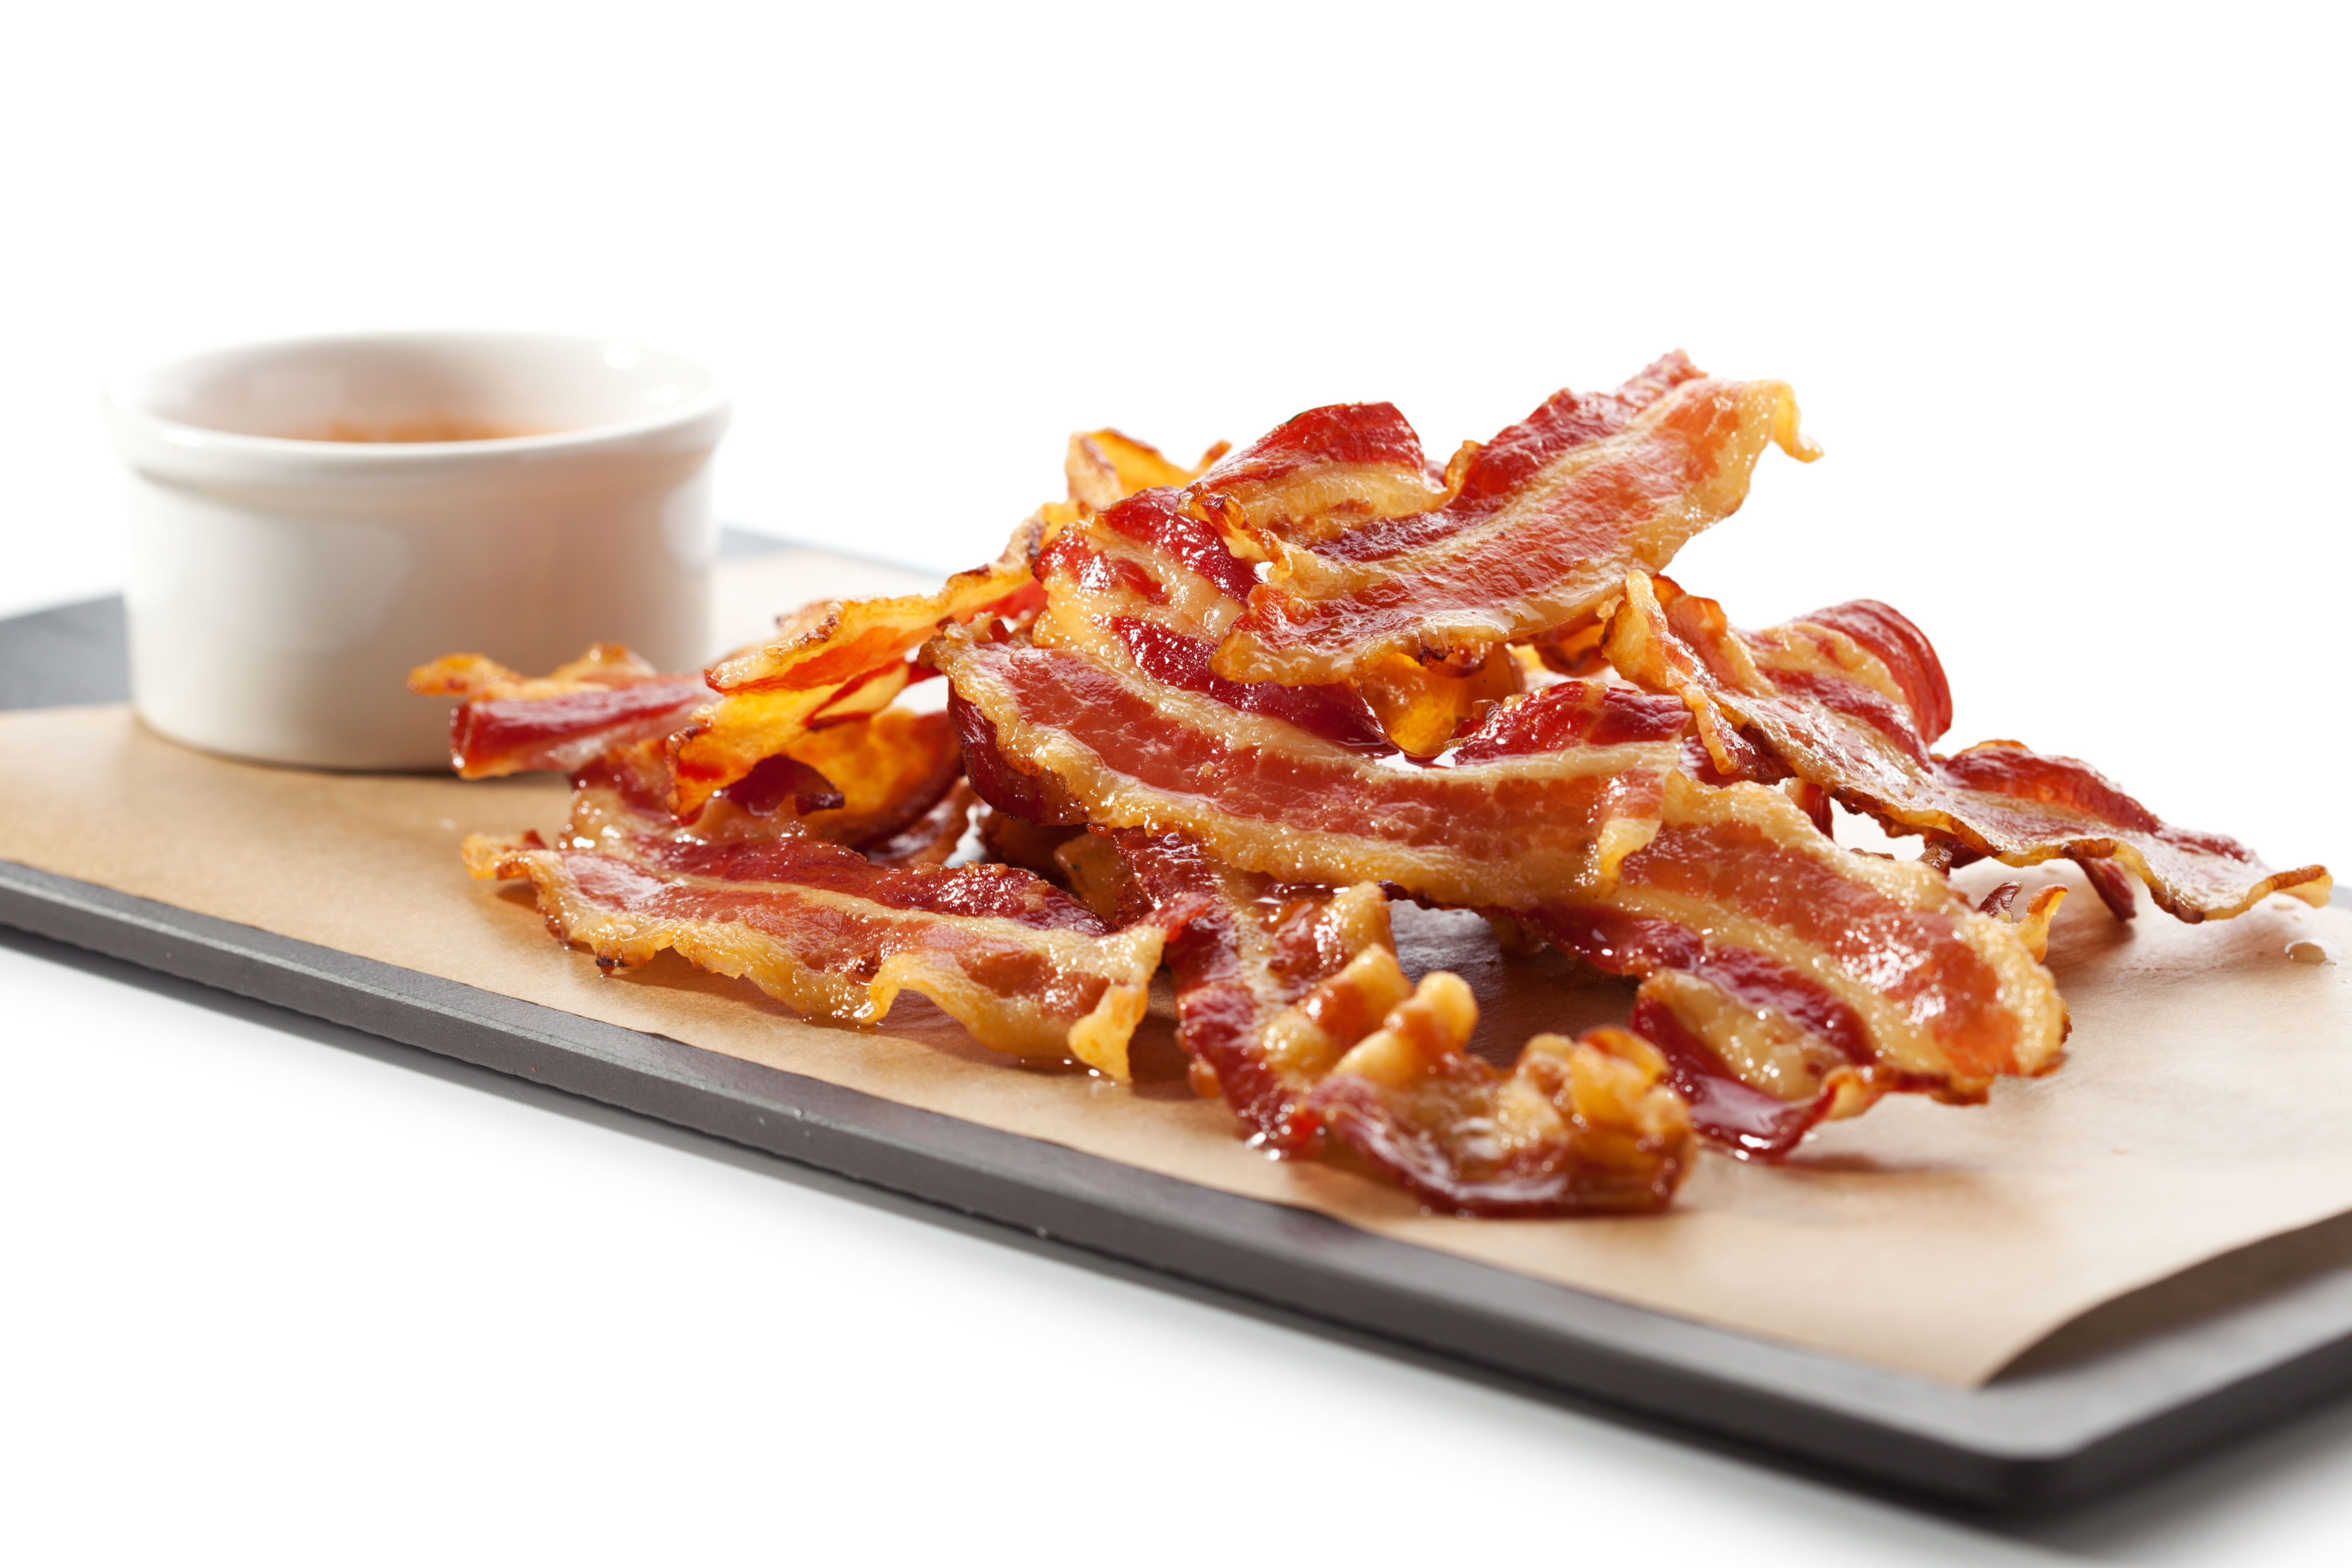 Bacon Computer Wallpapers Desktop Backgrounds 5110x3407 HD Wallpapers Download Free Images Wallpaper [1000image.com]